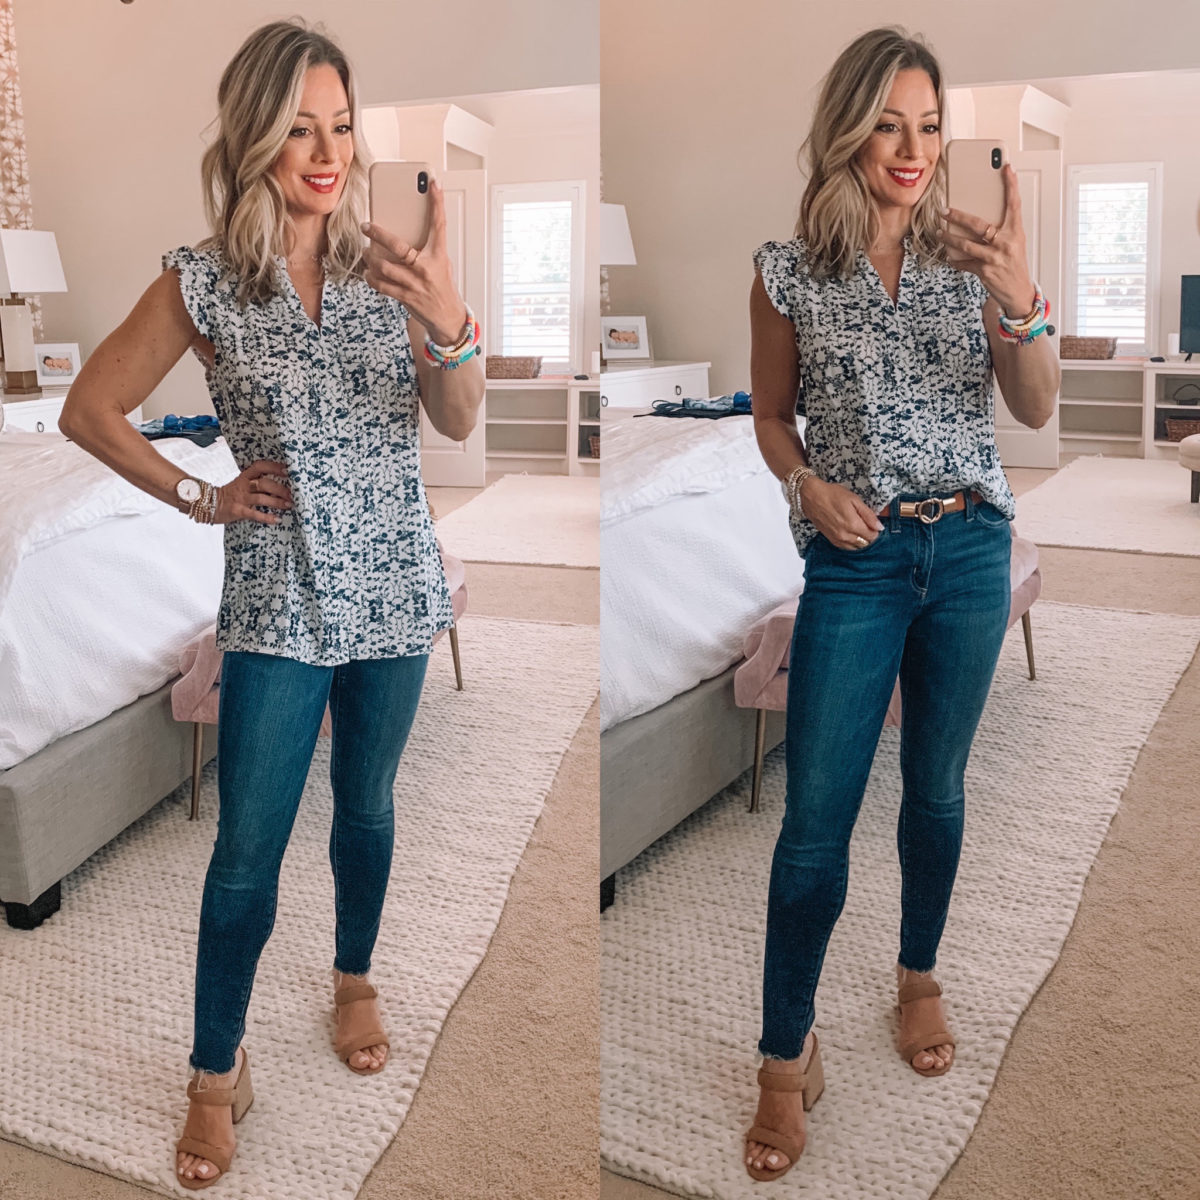 Amazon Fashion Finds, Sleevless Floral V Neck Top, Skinny Jeans, Sandals